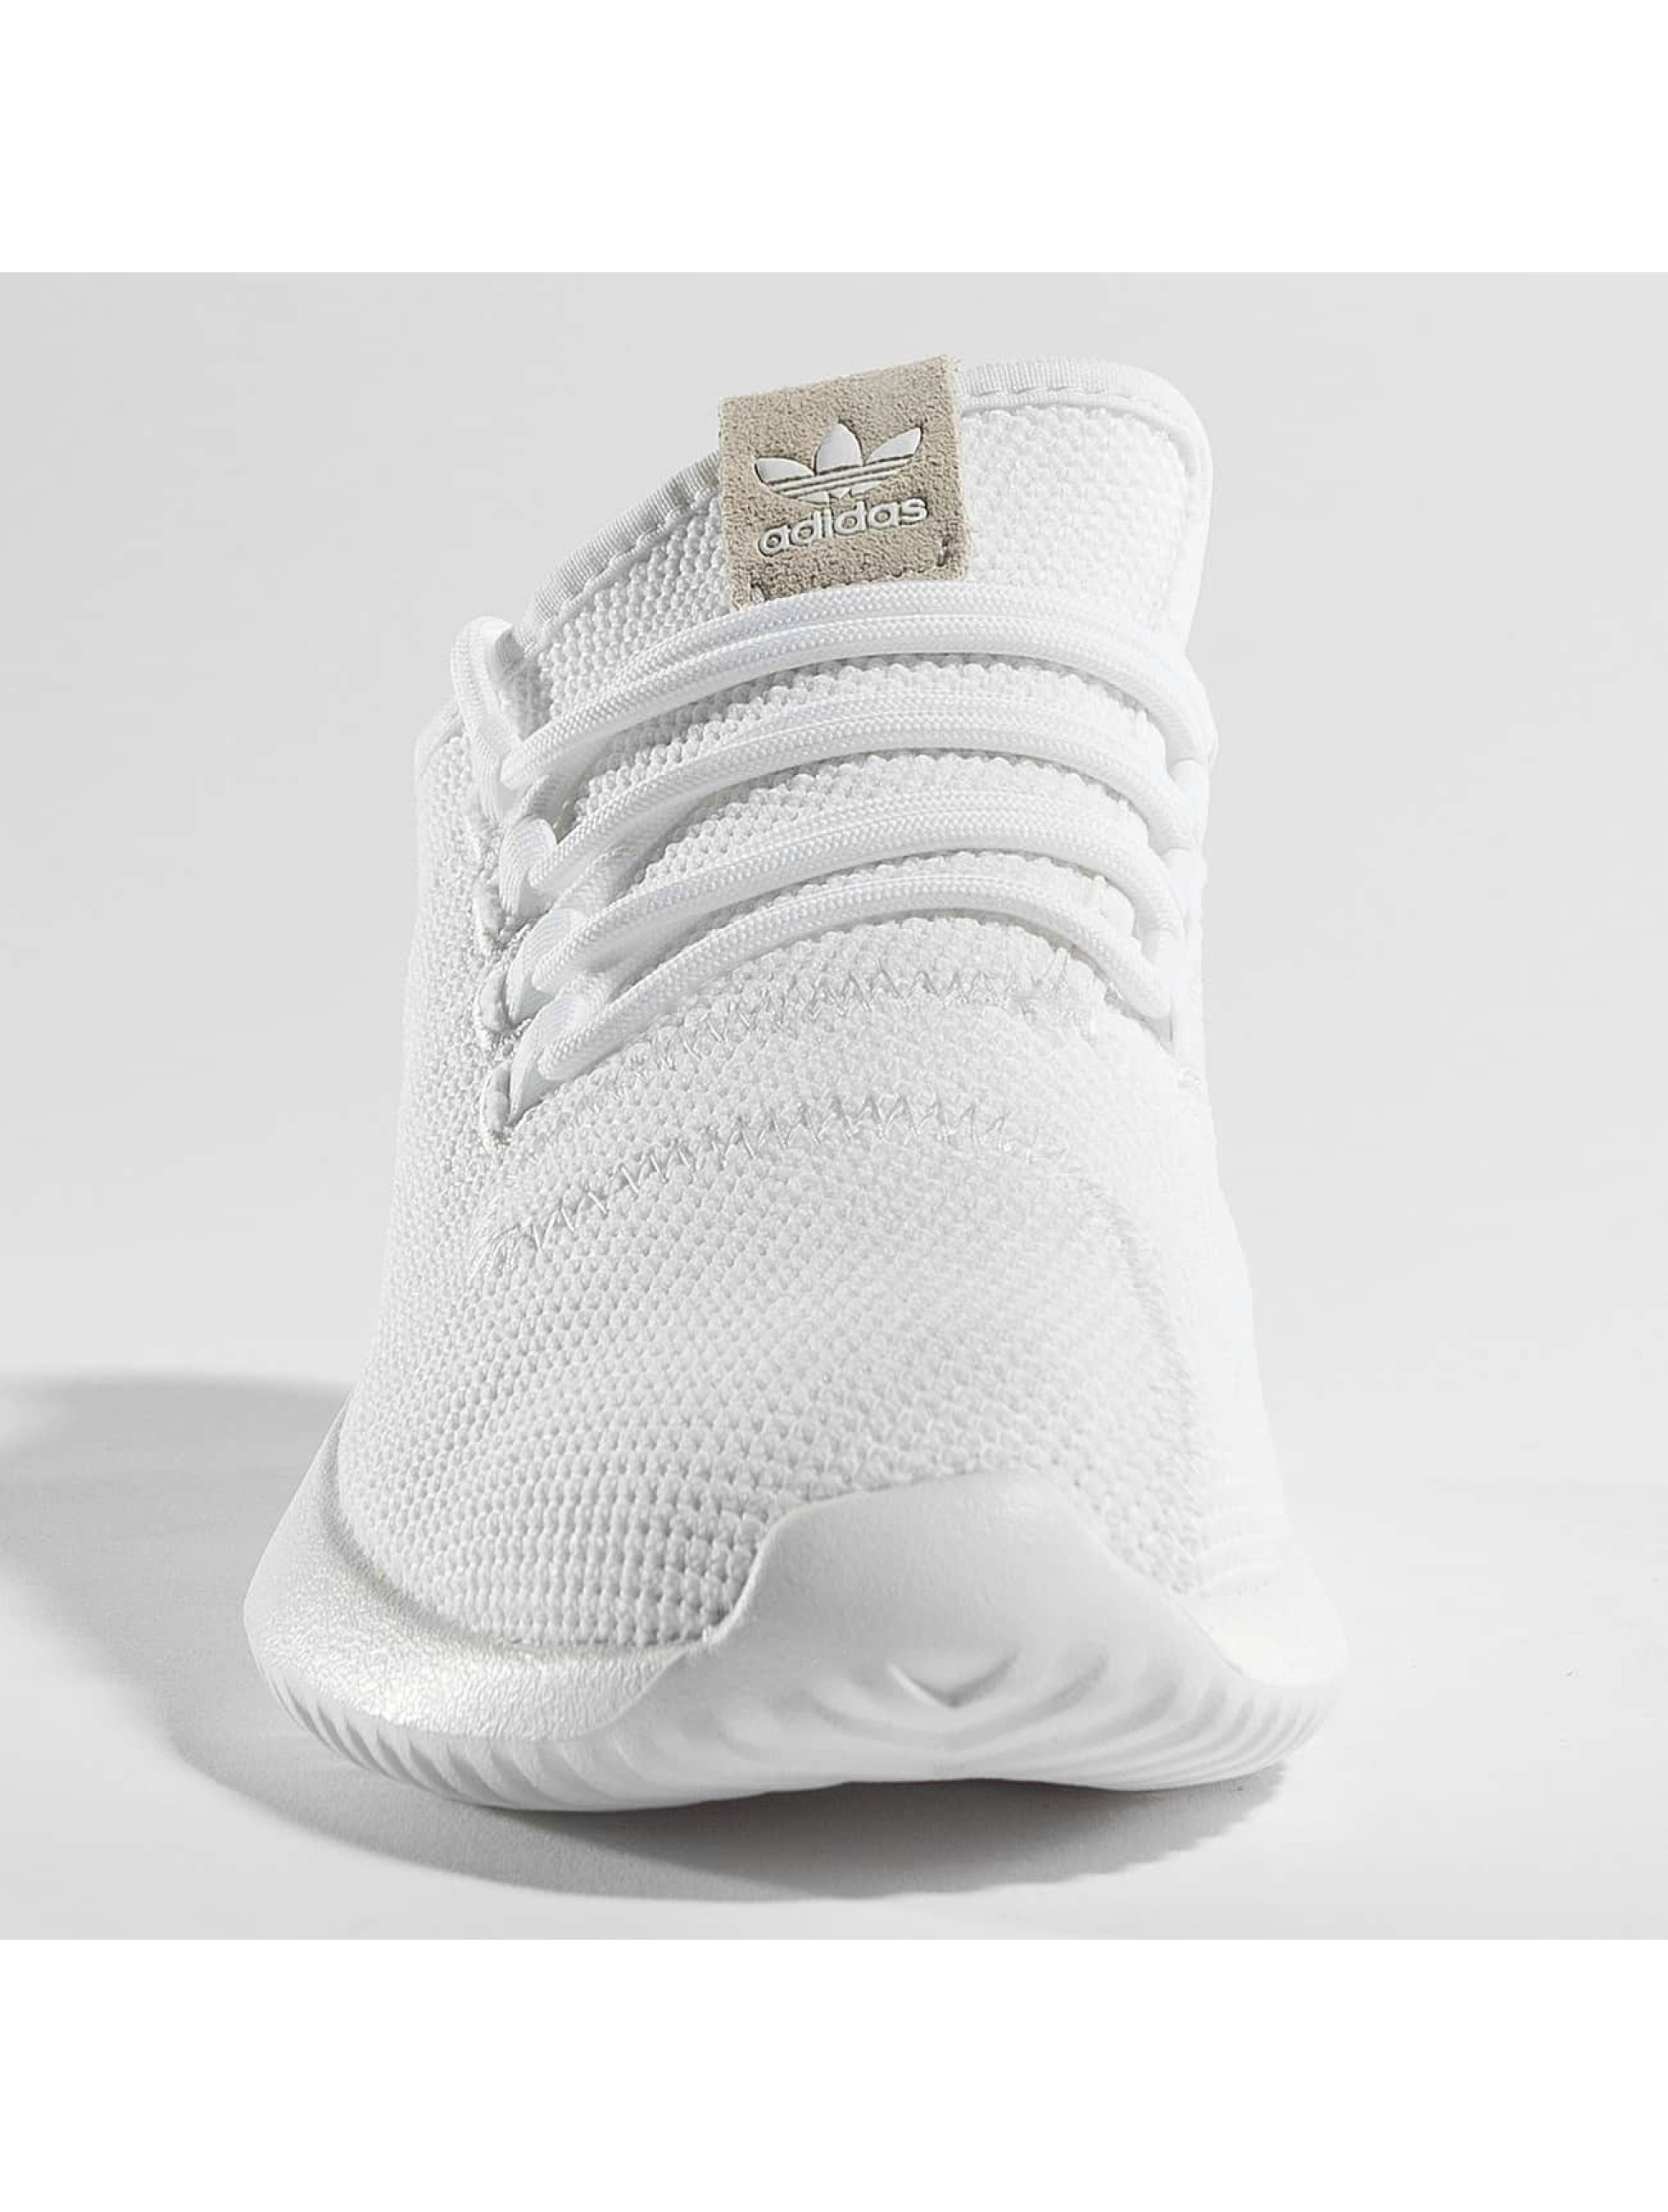 adidas Sneakers Tubular Shadow white